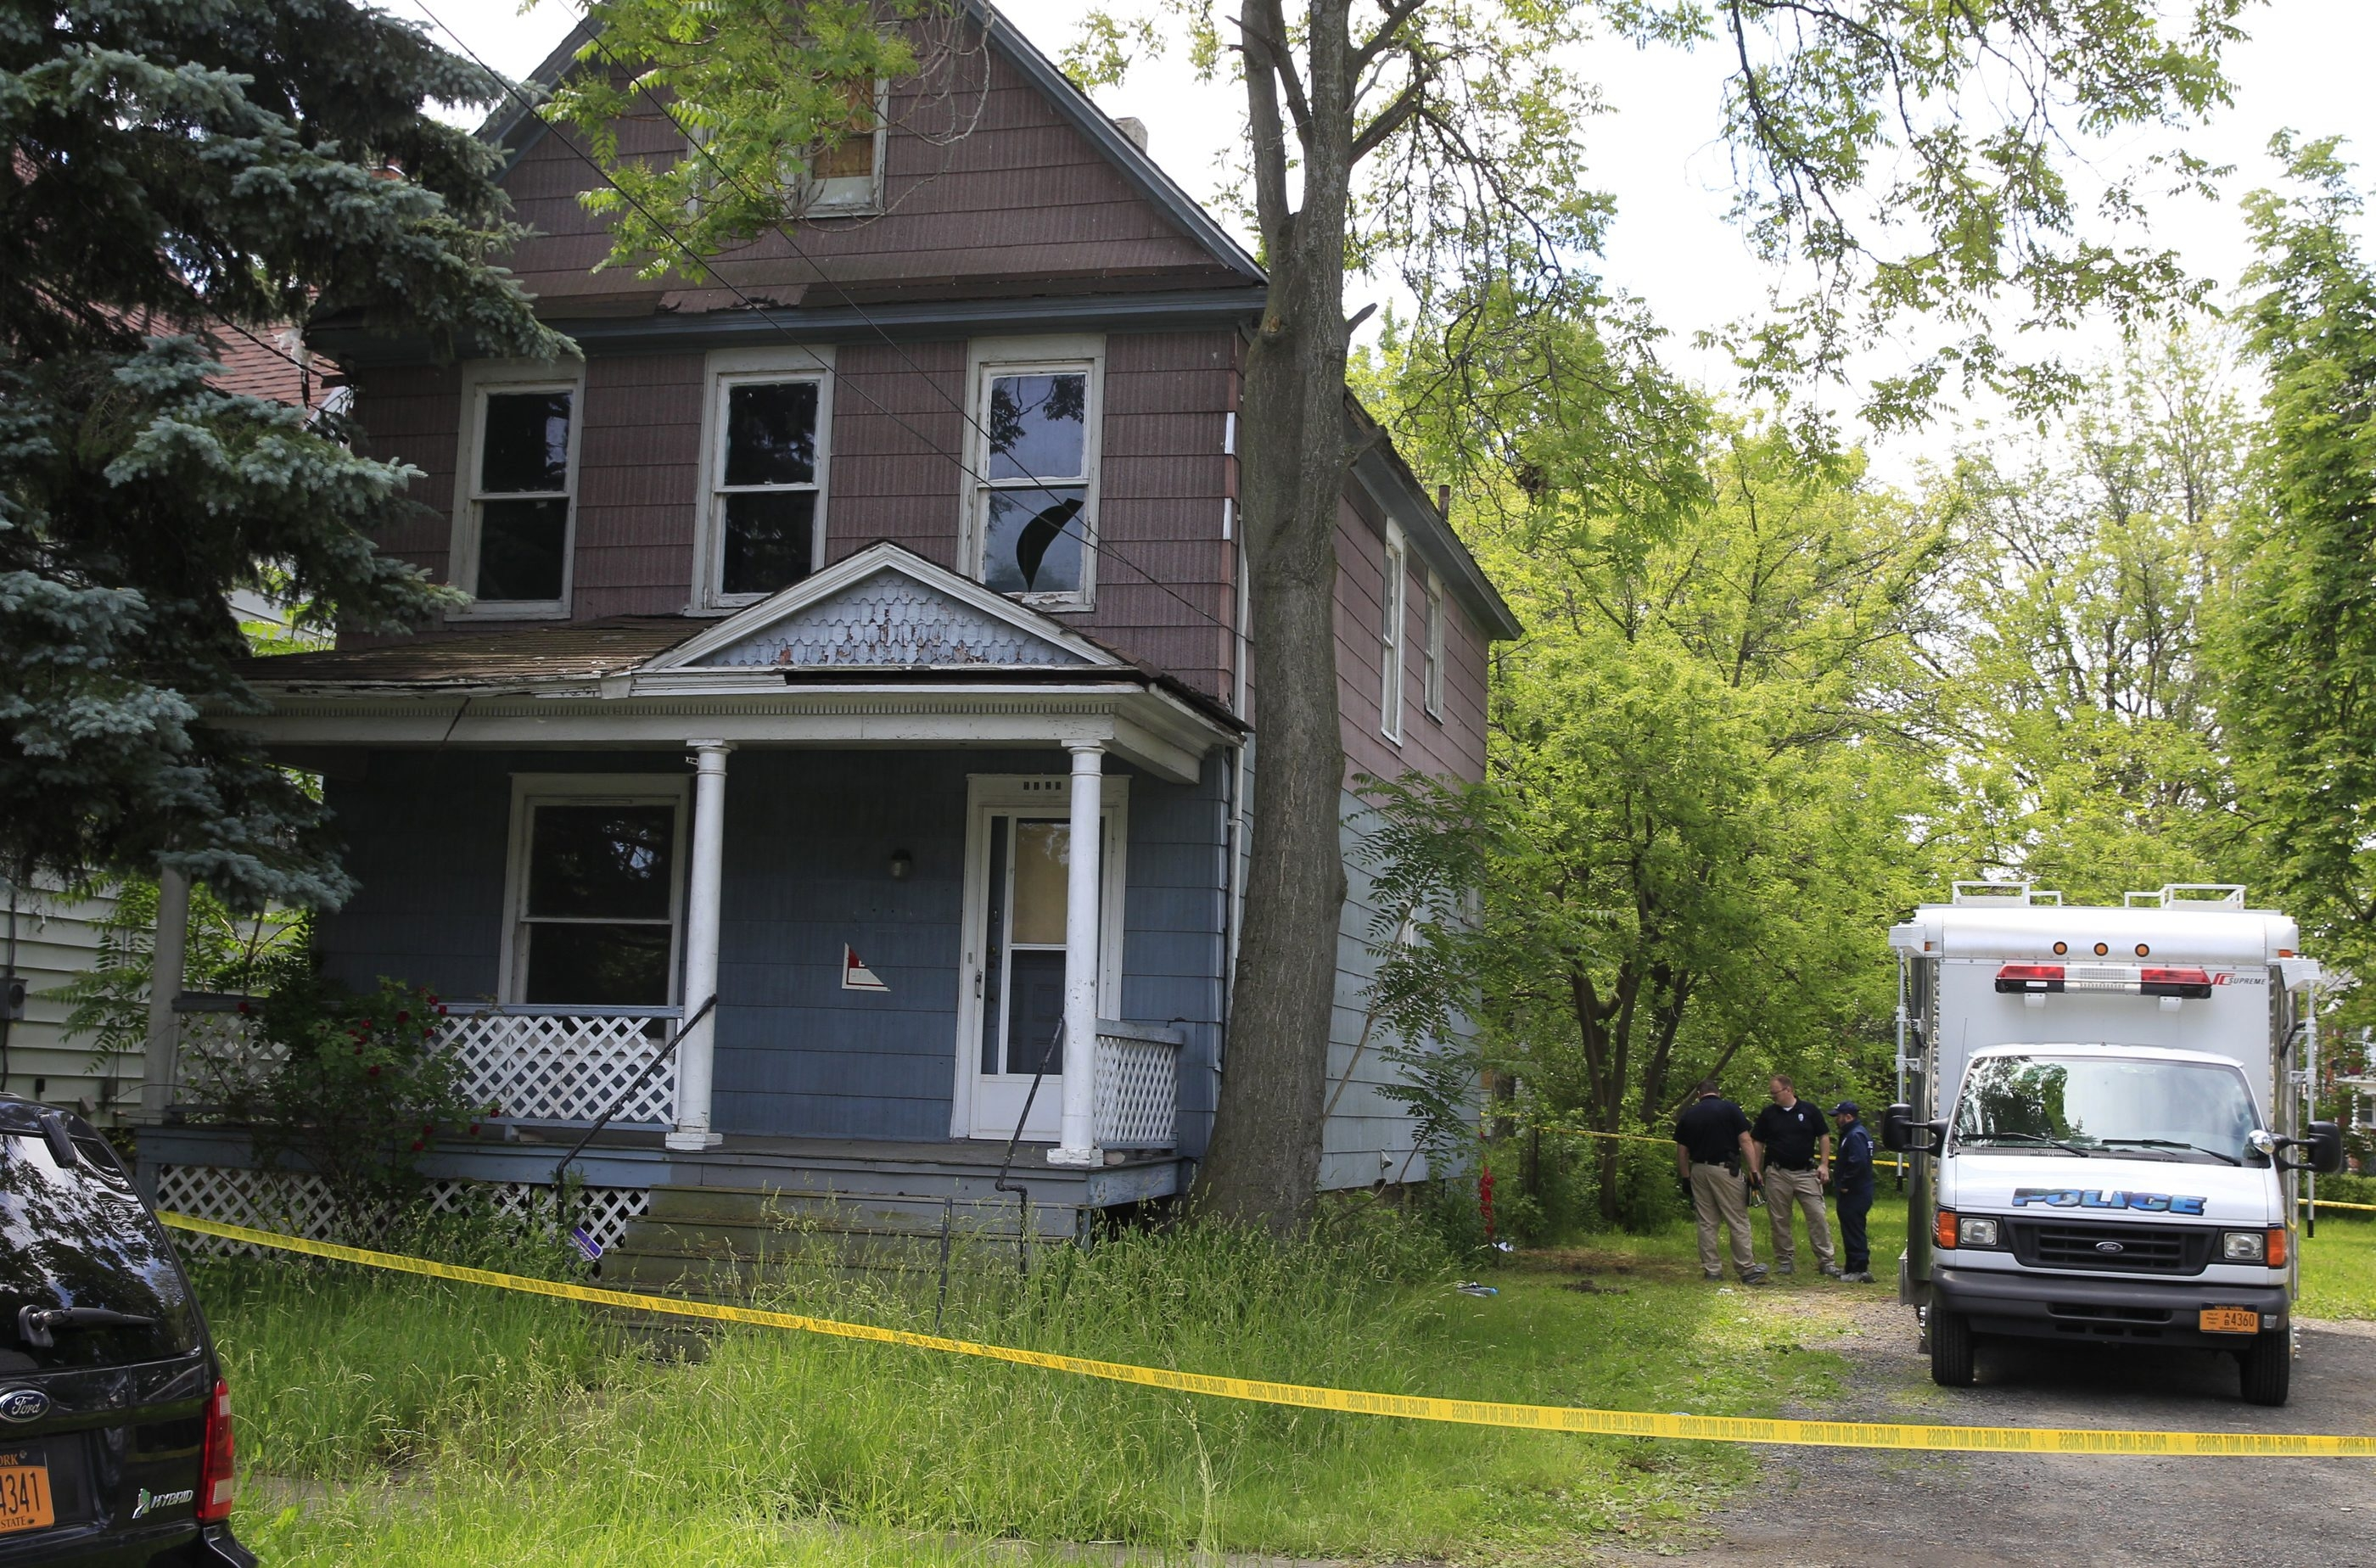 The Willow Avenue house where the partial remains of Terri Lynn Bills were found in mid-June. (John Hickey/Buffalo News)